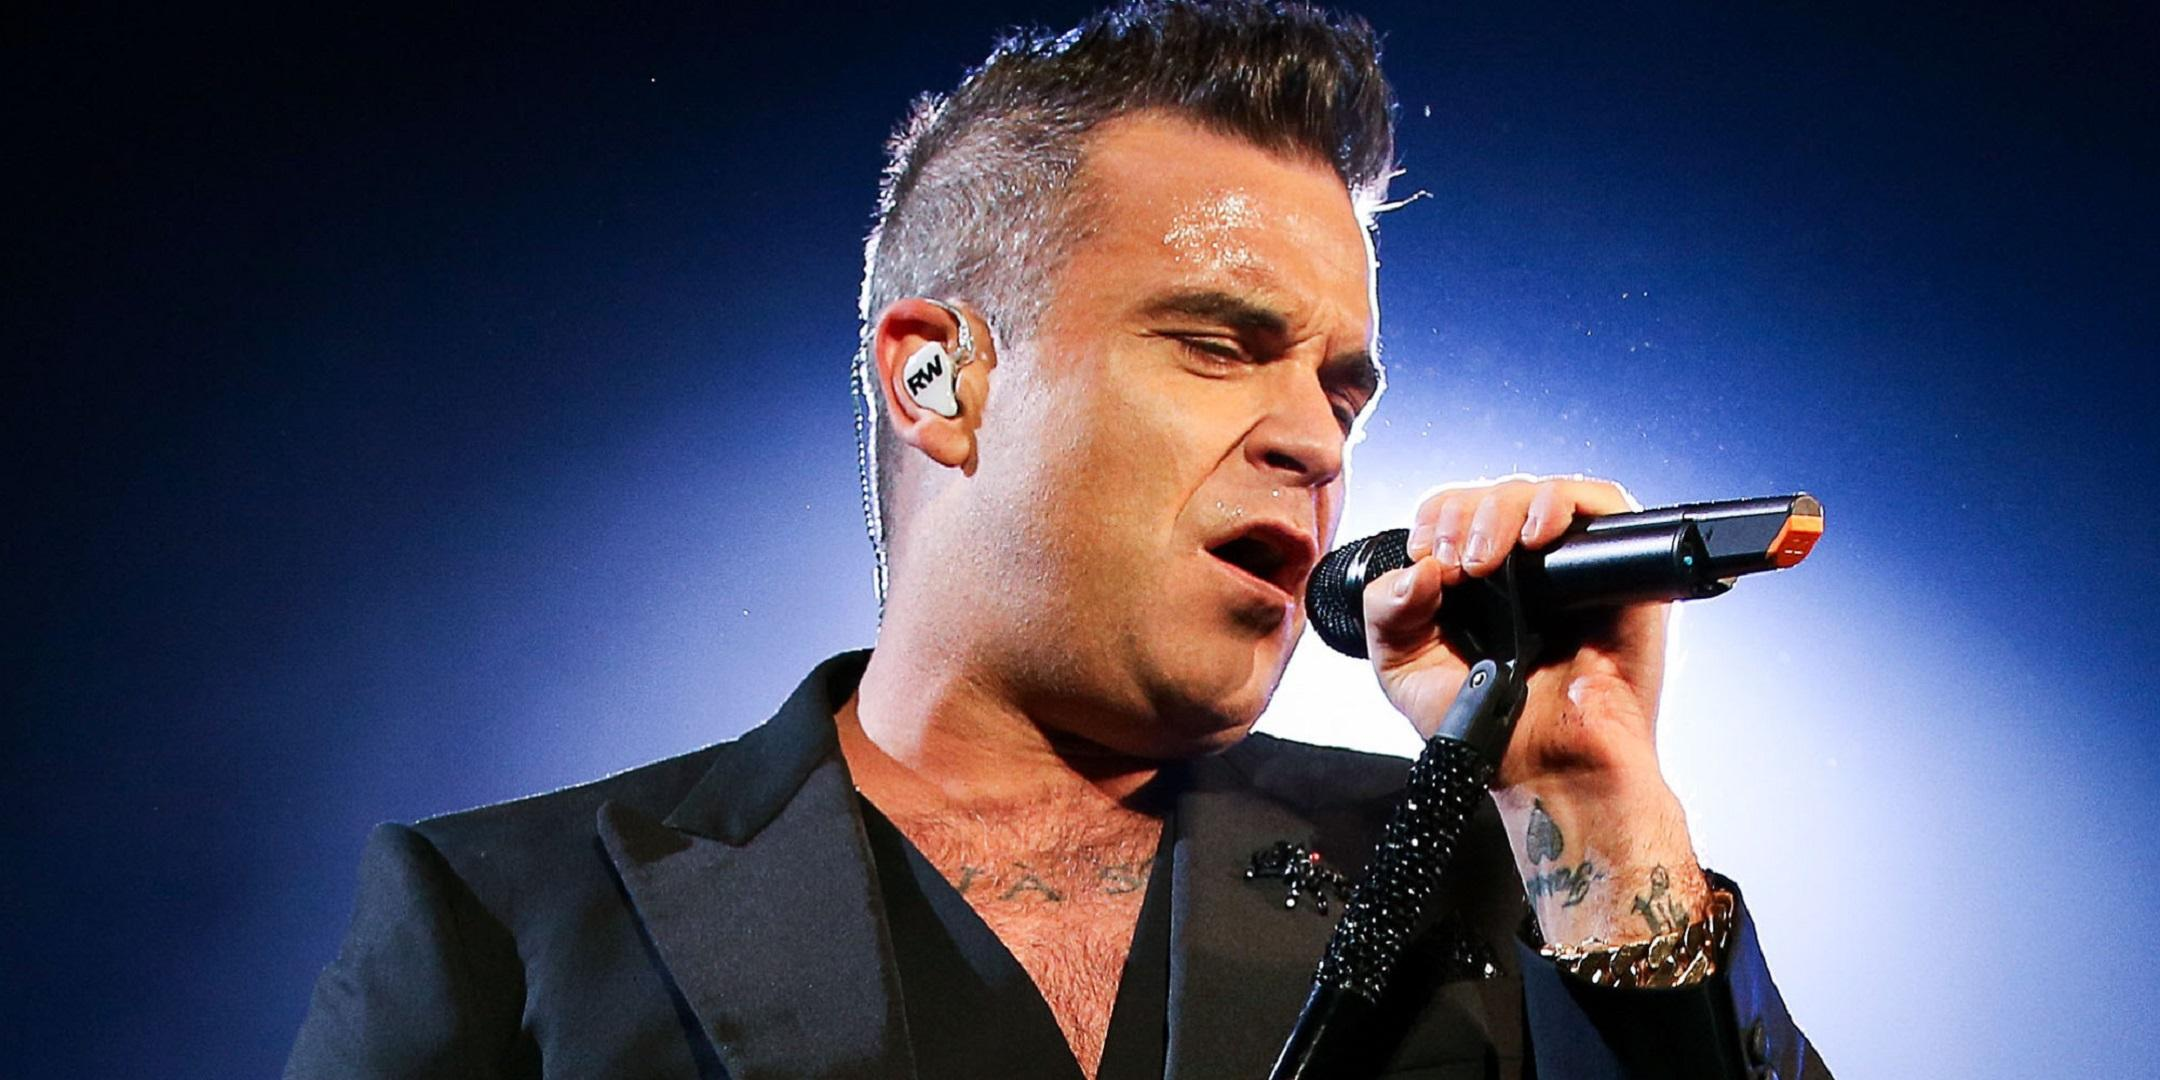 Robbie Williams Wallpapers Images Photos Pictures Backgrounds